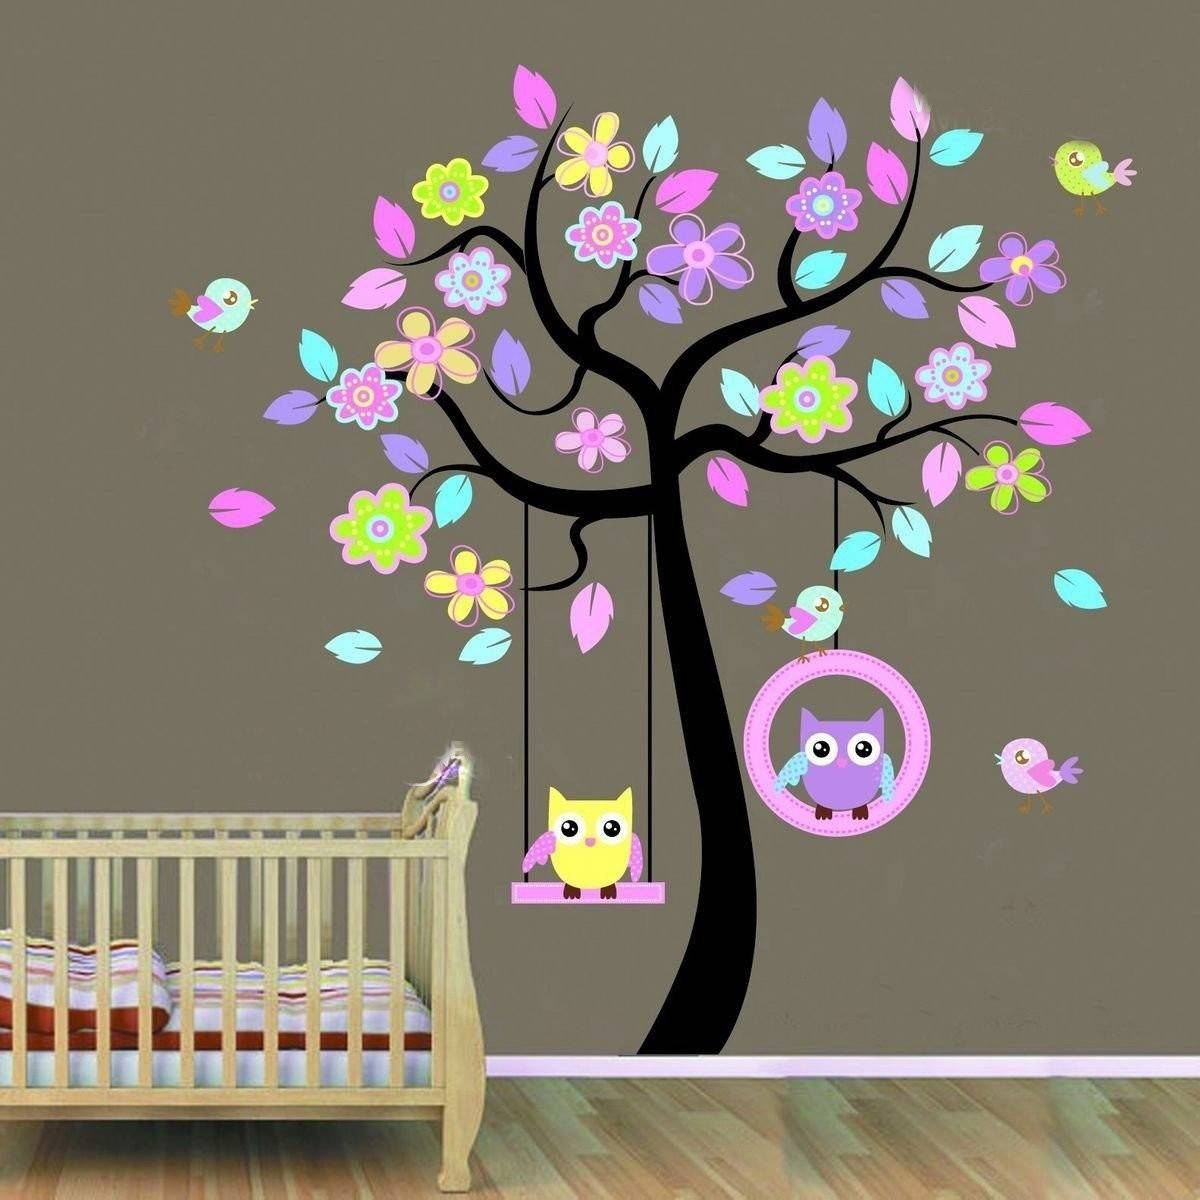 Huge Removable Swing Owl & Birds Colorful Scroll Tree Wall Art Throughout Best And Newest Owl Wall Art Stickers (View 7 of 15)